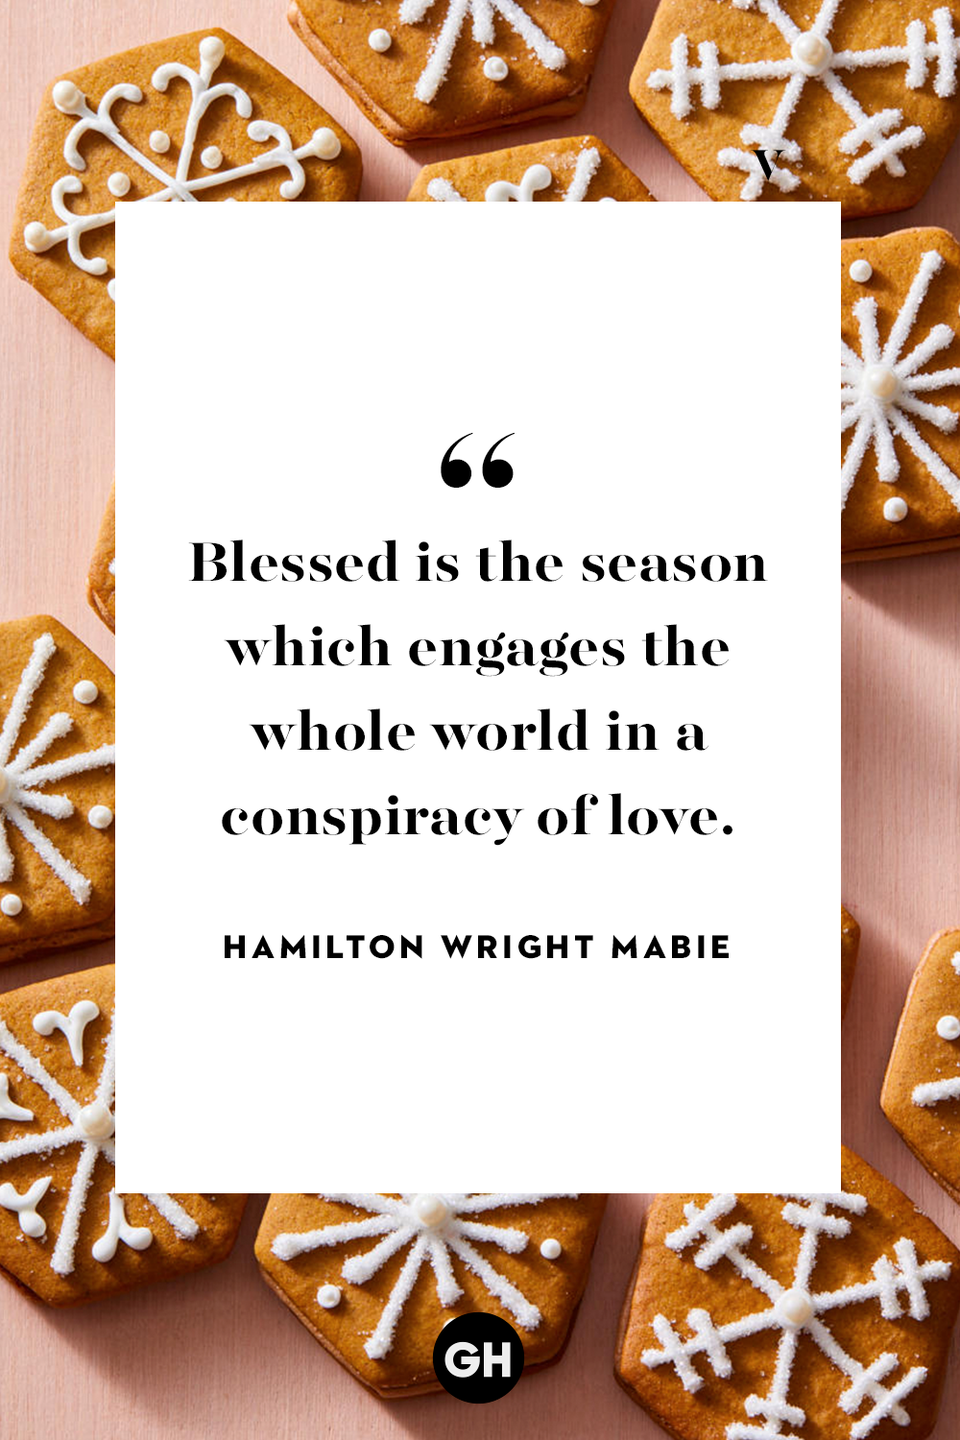 <p>Blessed is the season which engages the whole world in a conspiracy of love.</p>